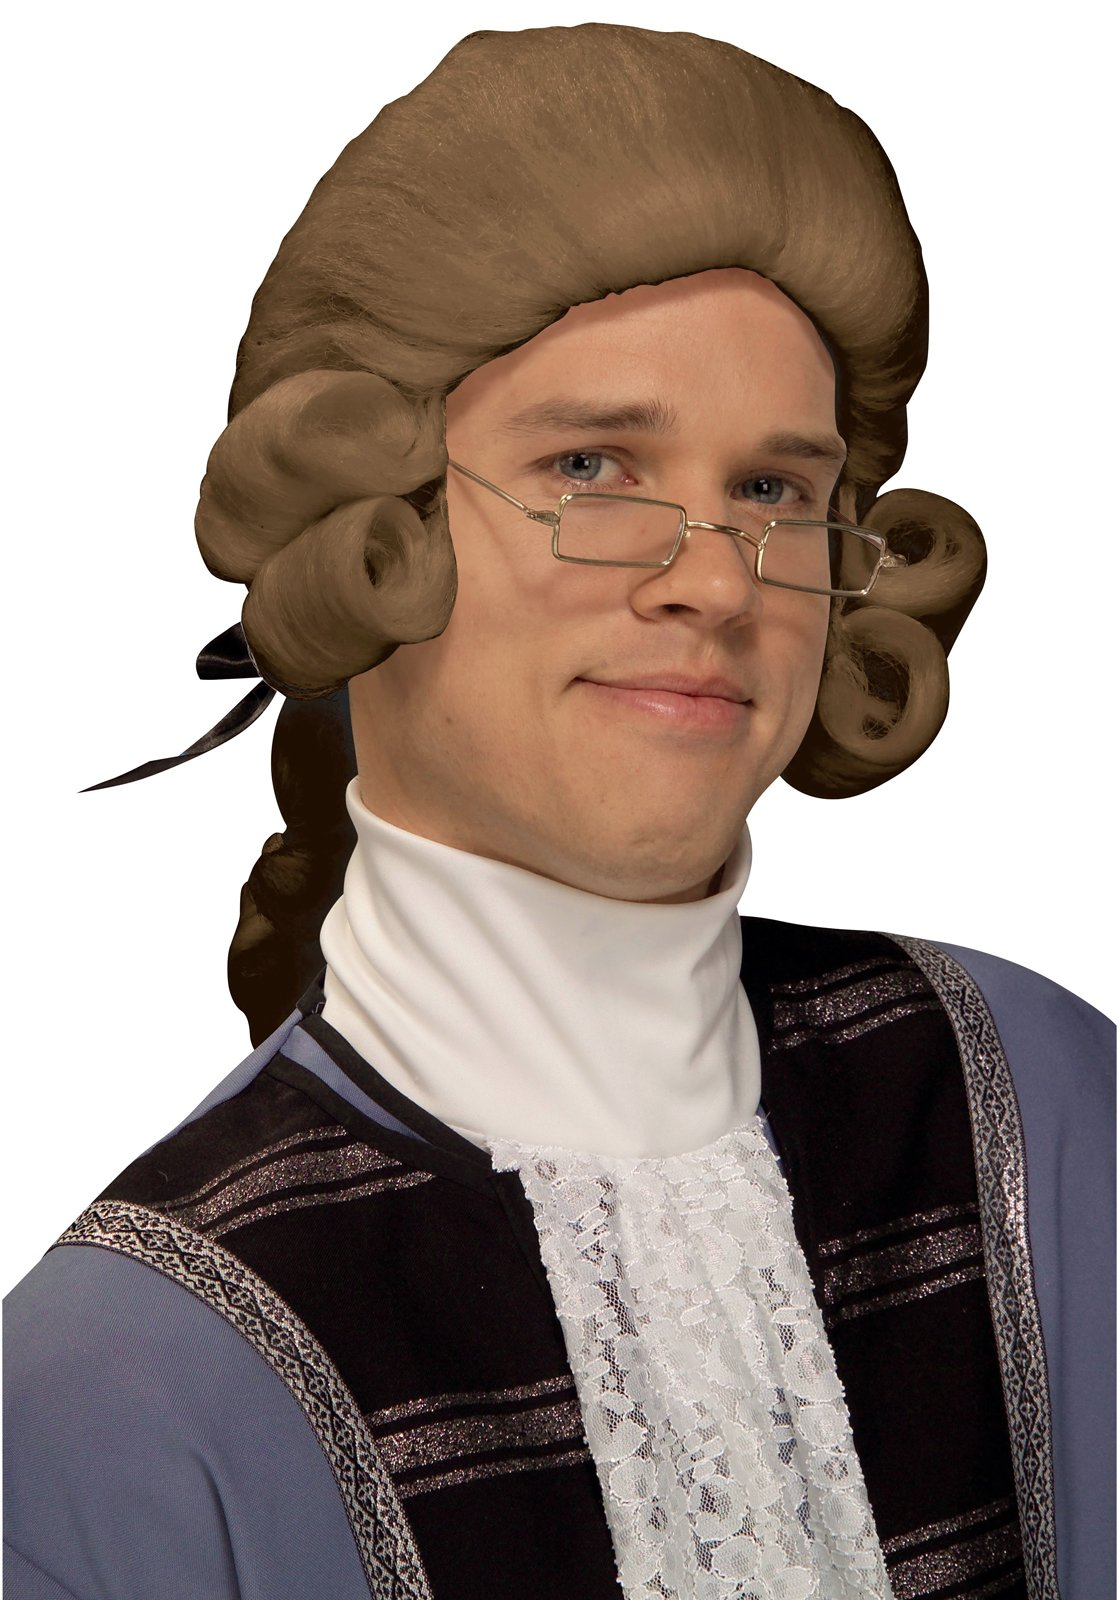 Men's Colonial Adult Wig (Brown)